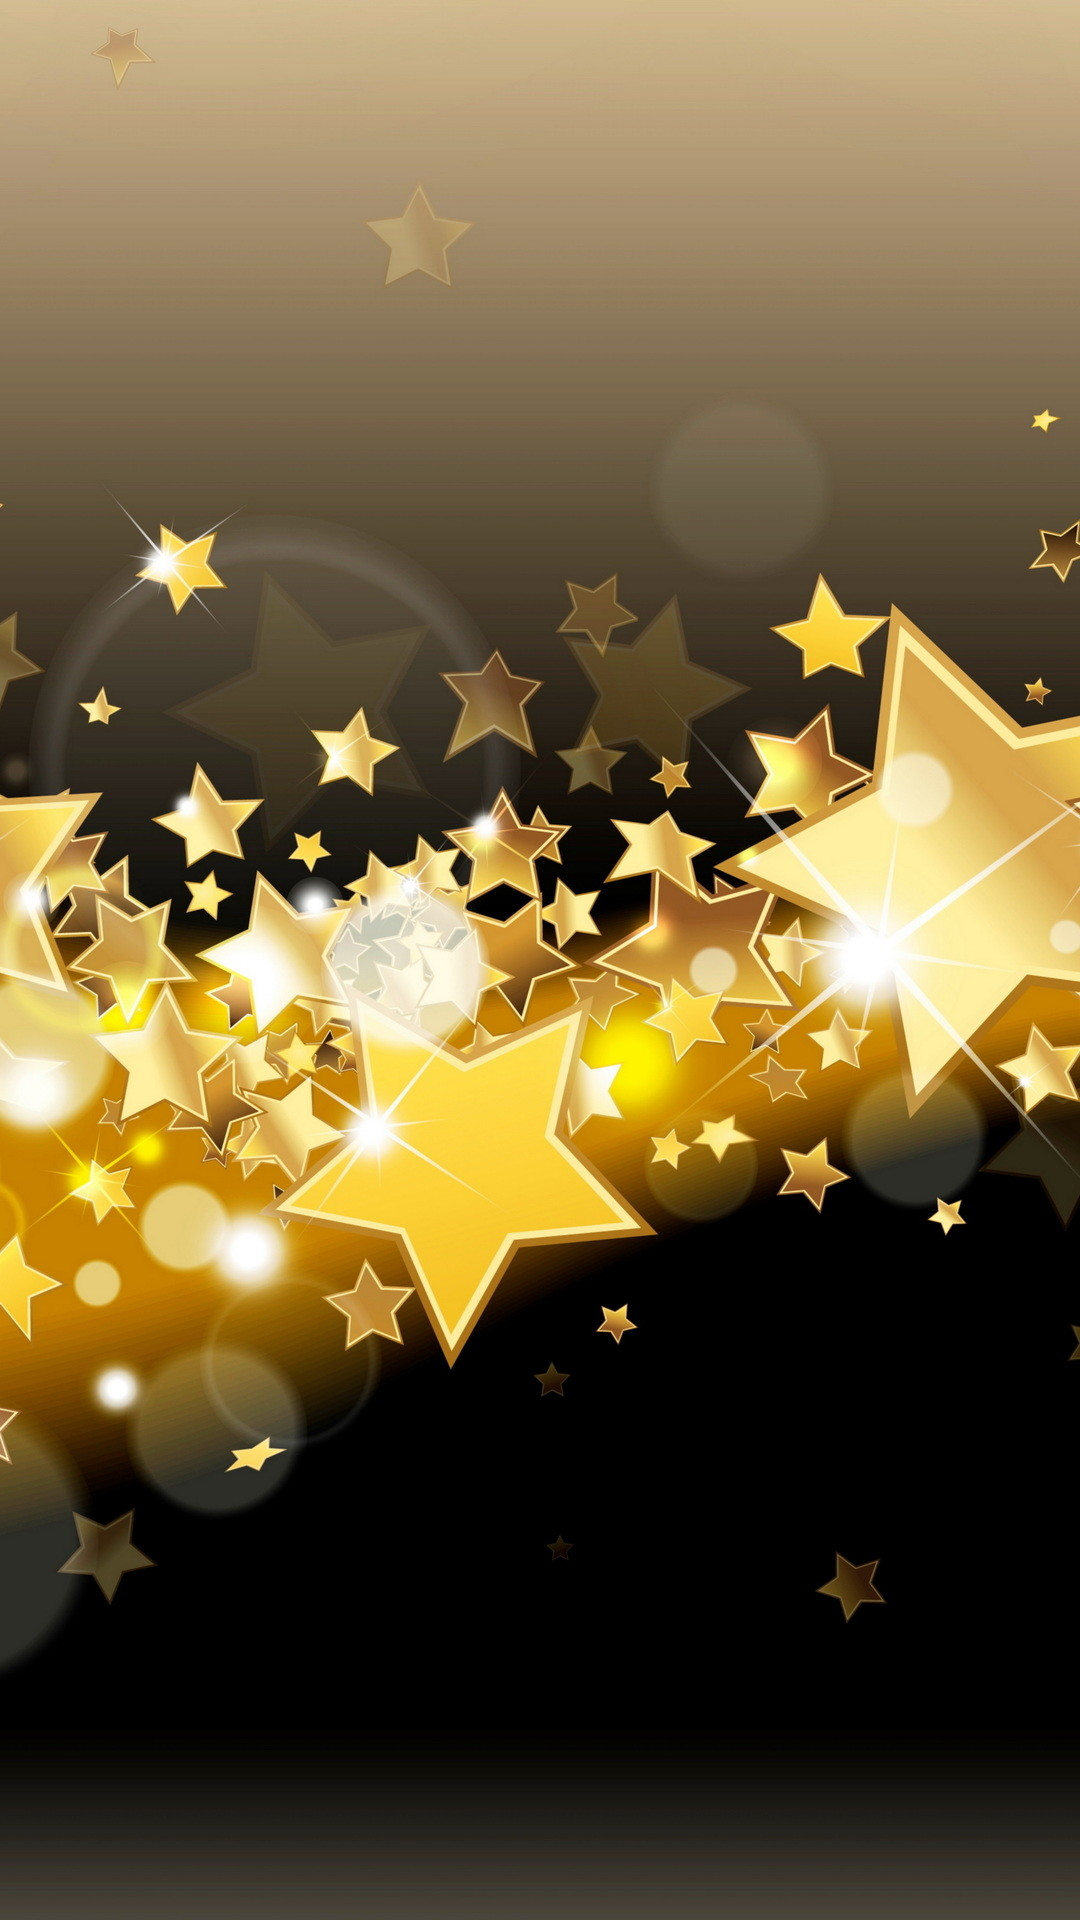 1080x1920 sparkle, golden, stars, gold, shine, glow, glitter, background,